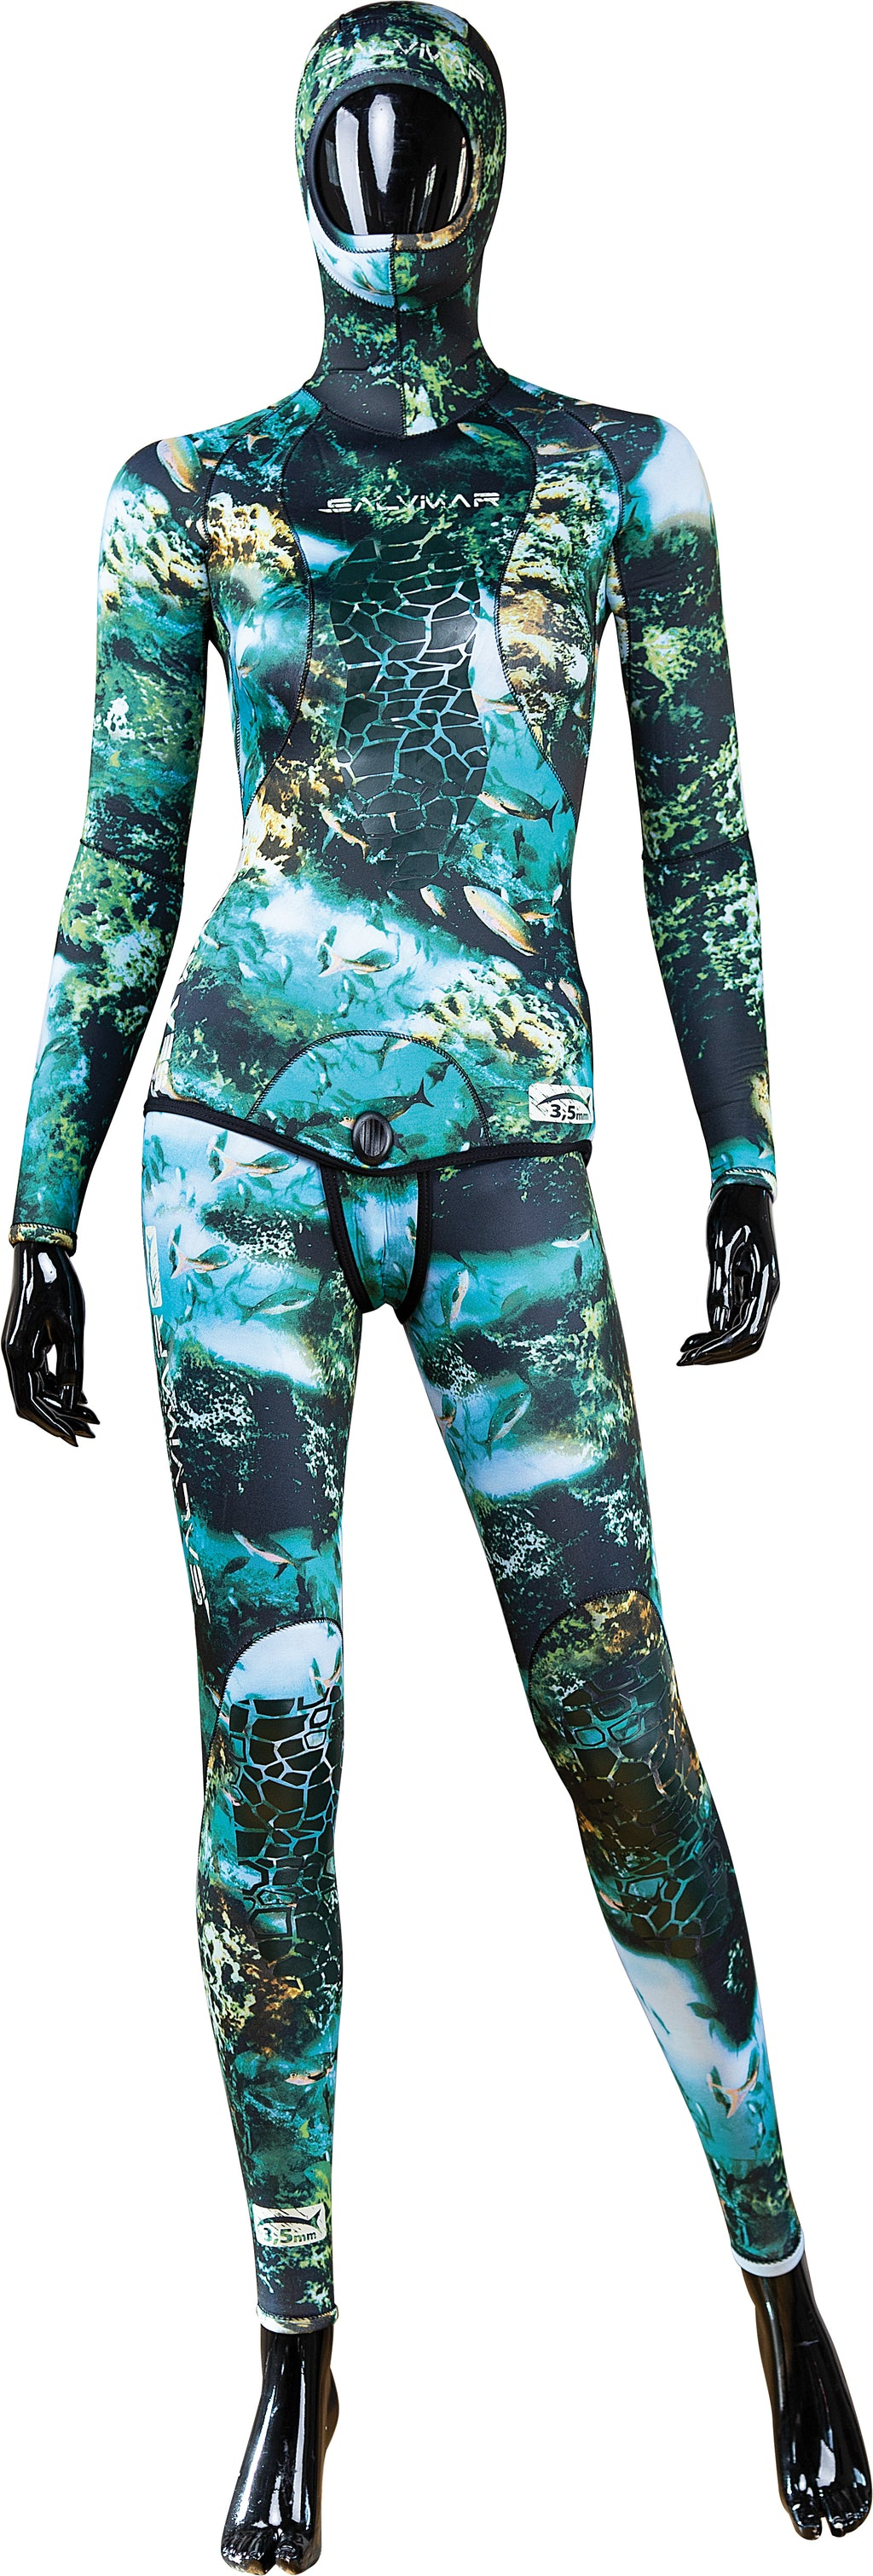 Salvimar Sea Walker 3.5mm – 5.5mm Women Wetsuit